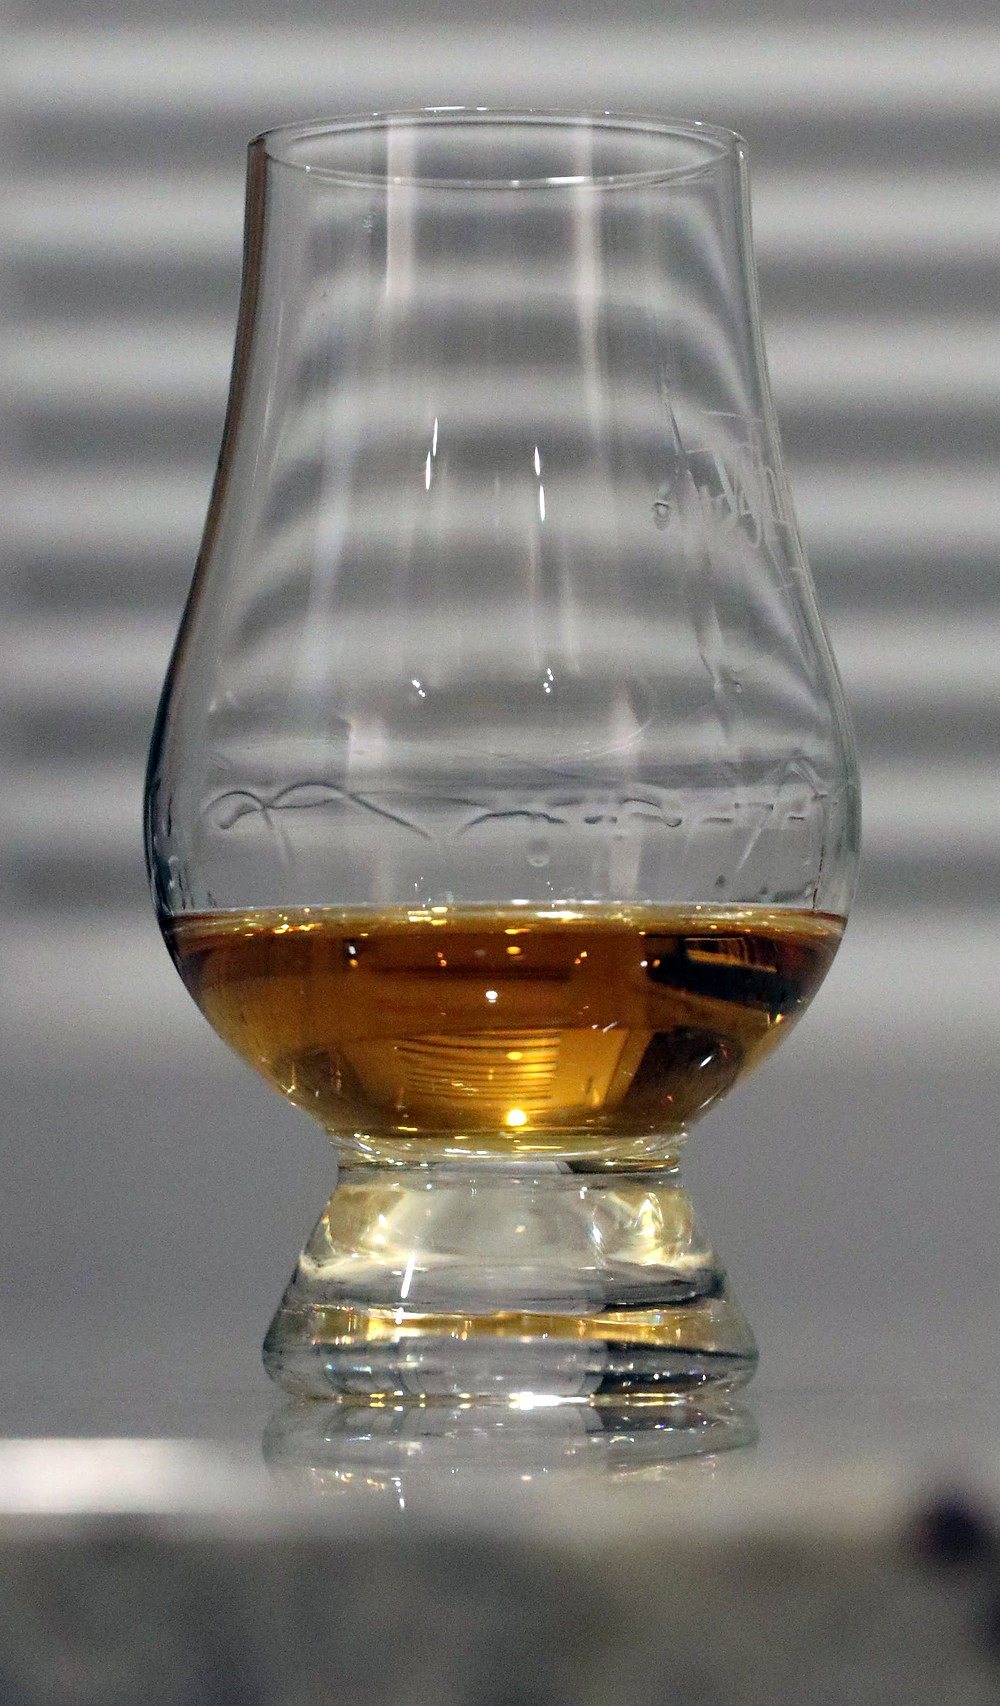 Glencairn glass with honey-colored whisky in it